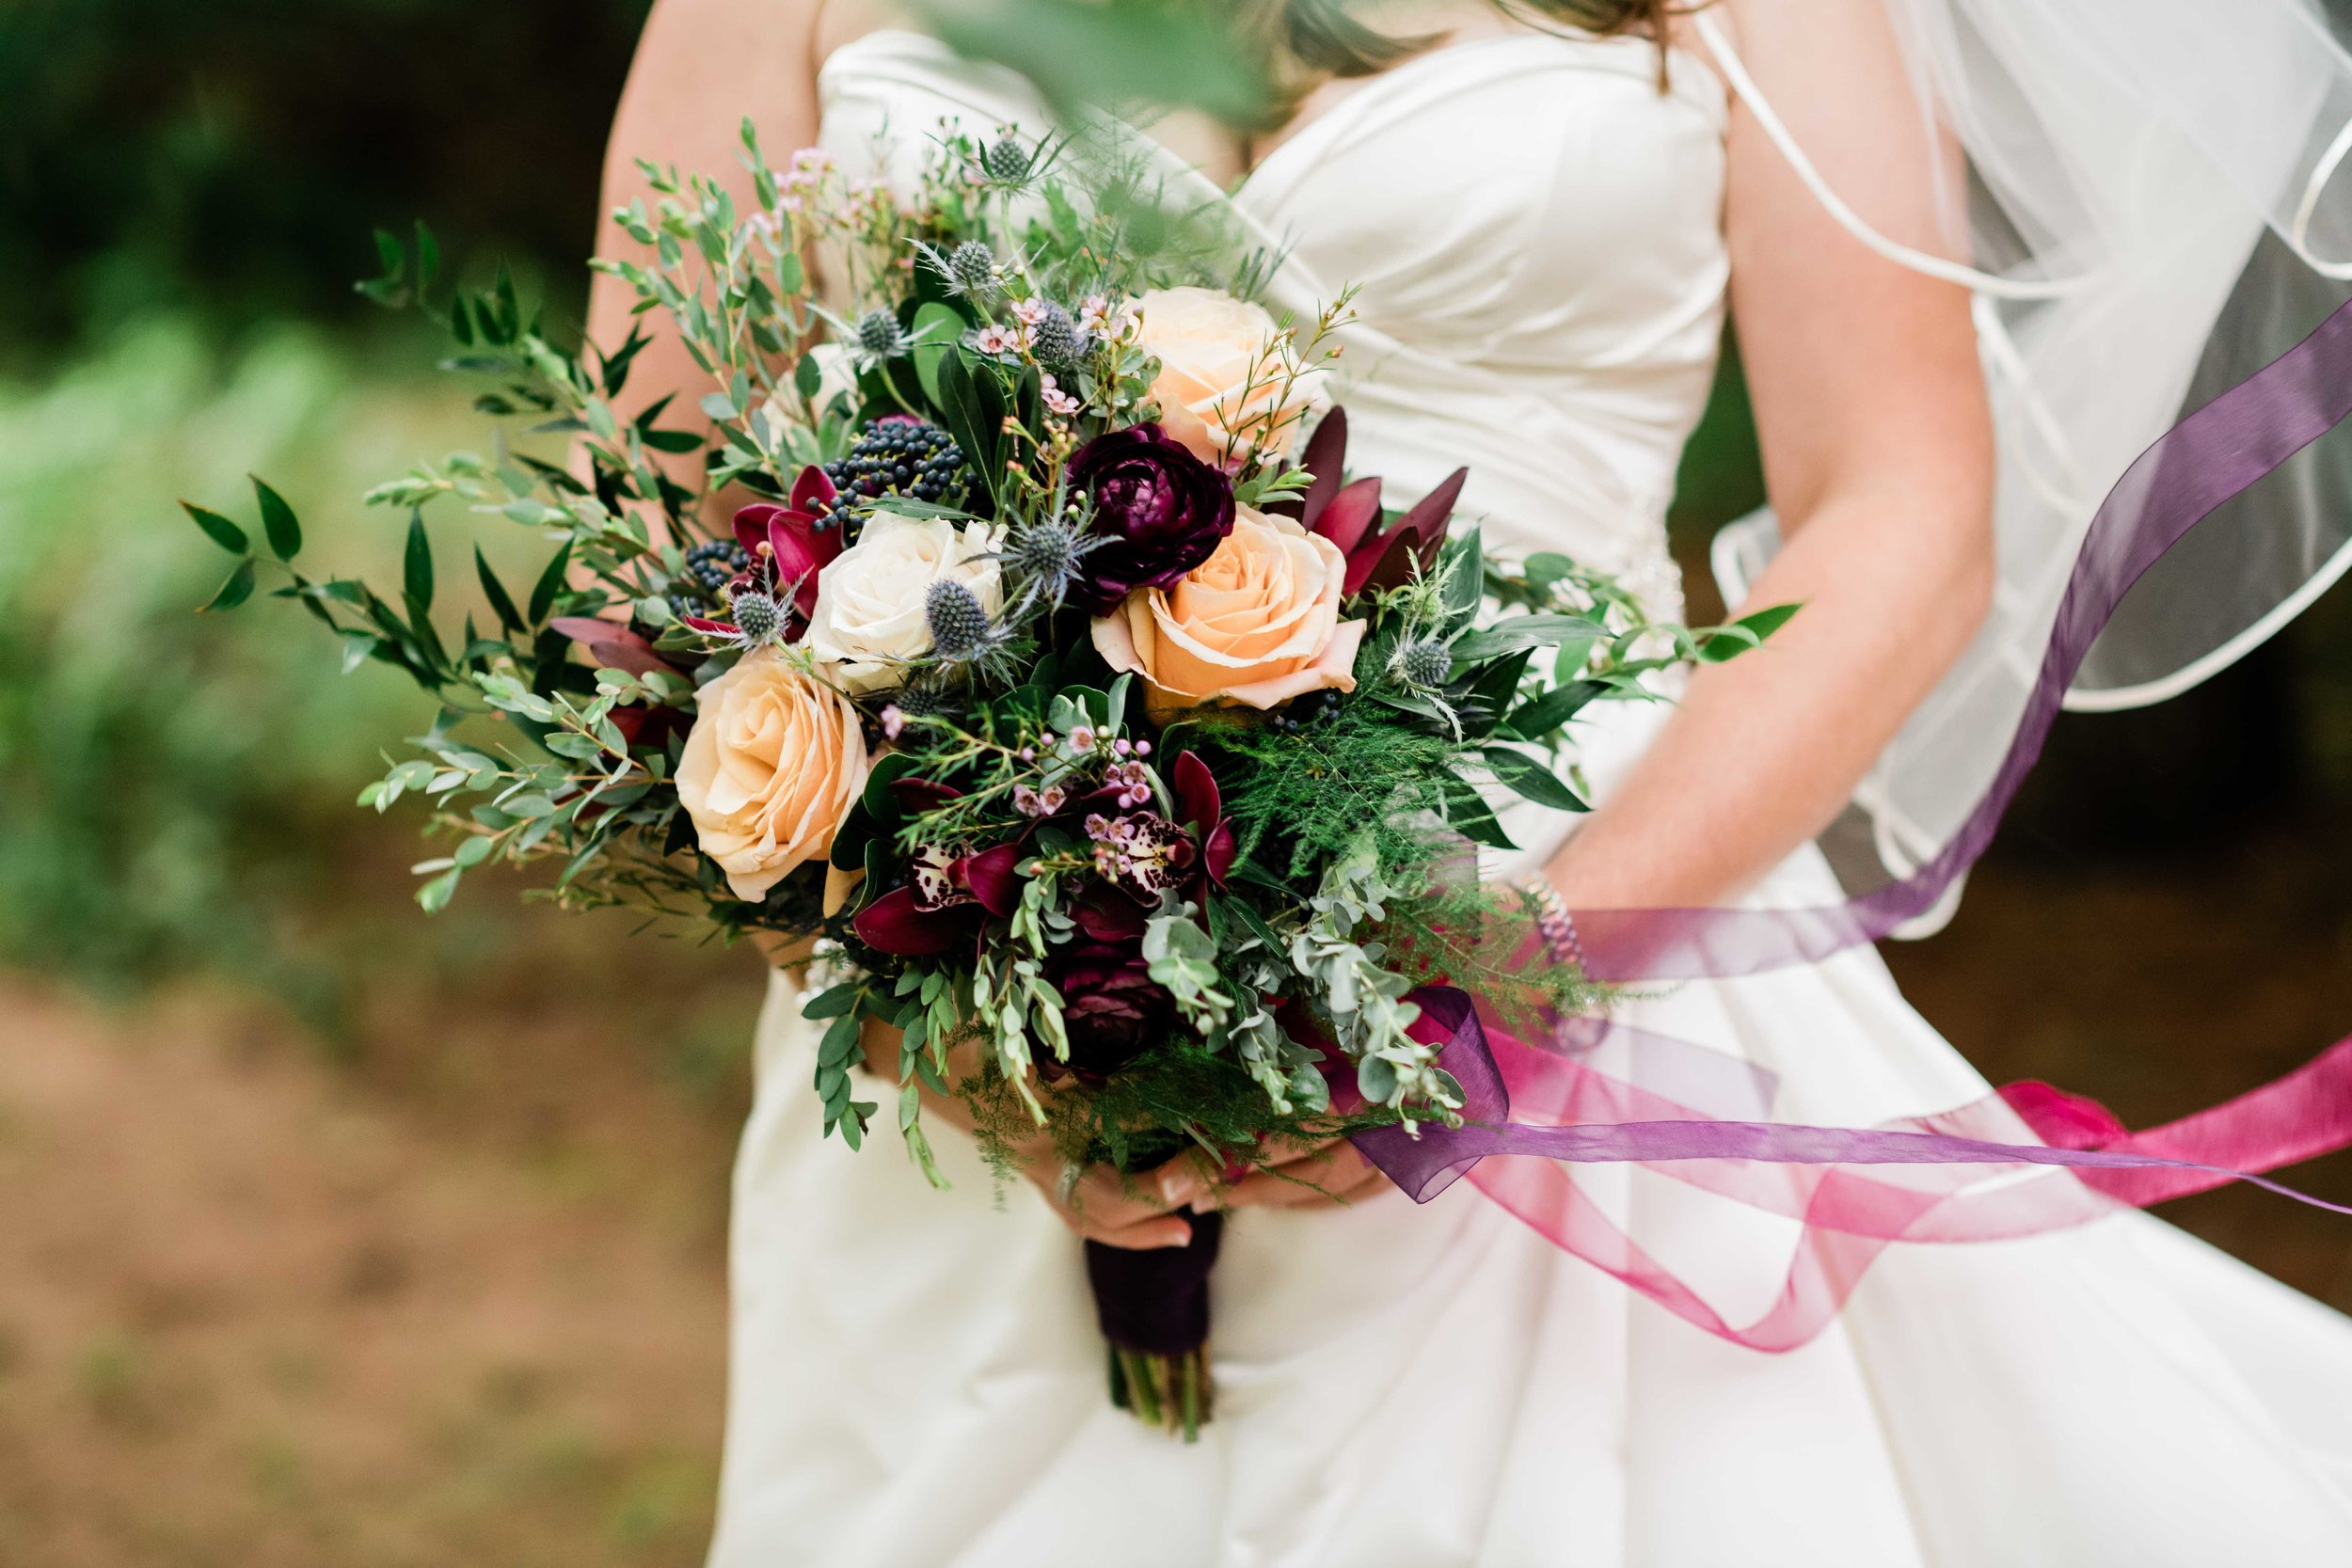 Bride's veil blows in the wind as she holds her bouquet